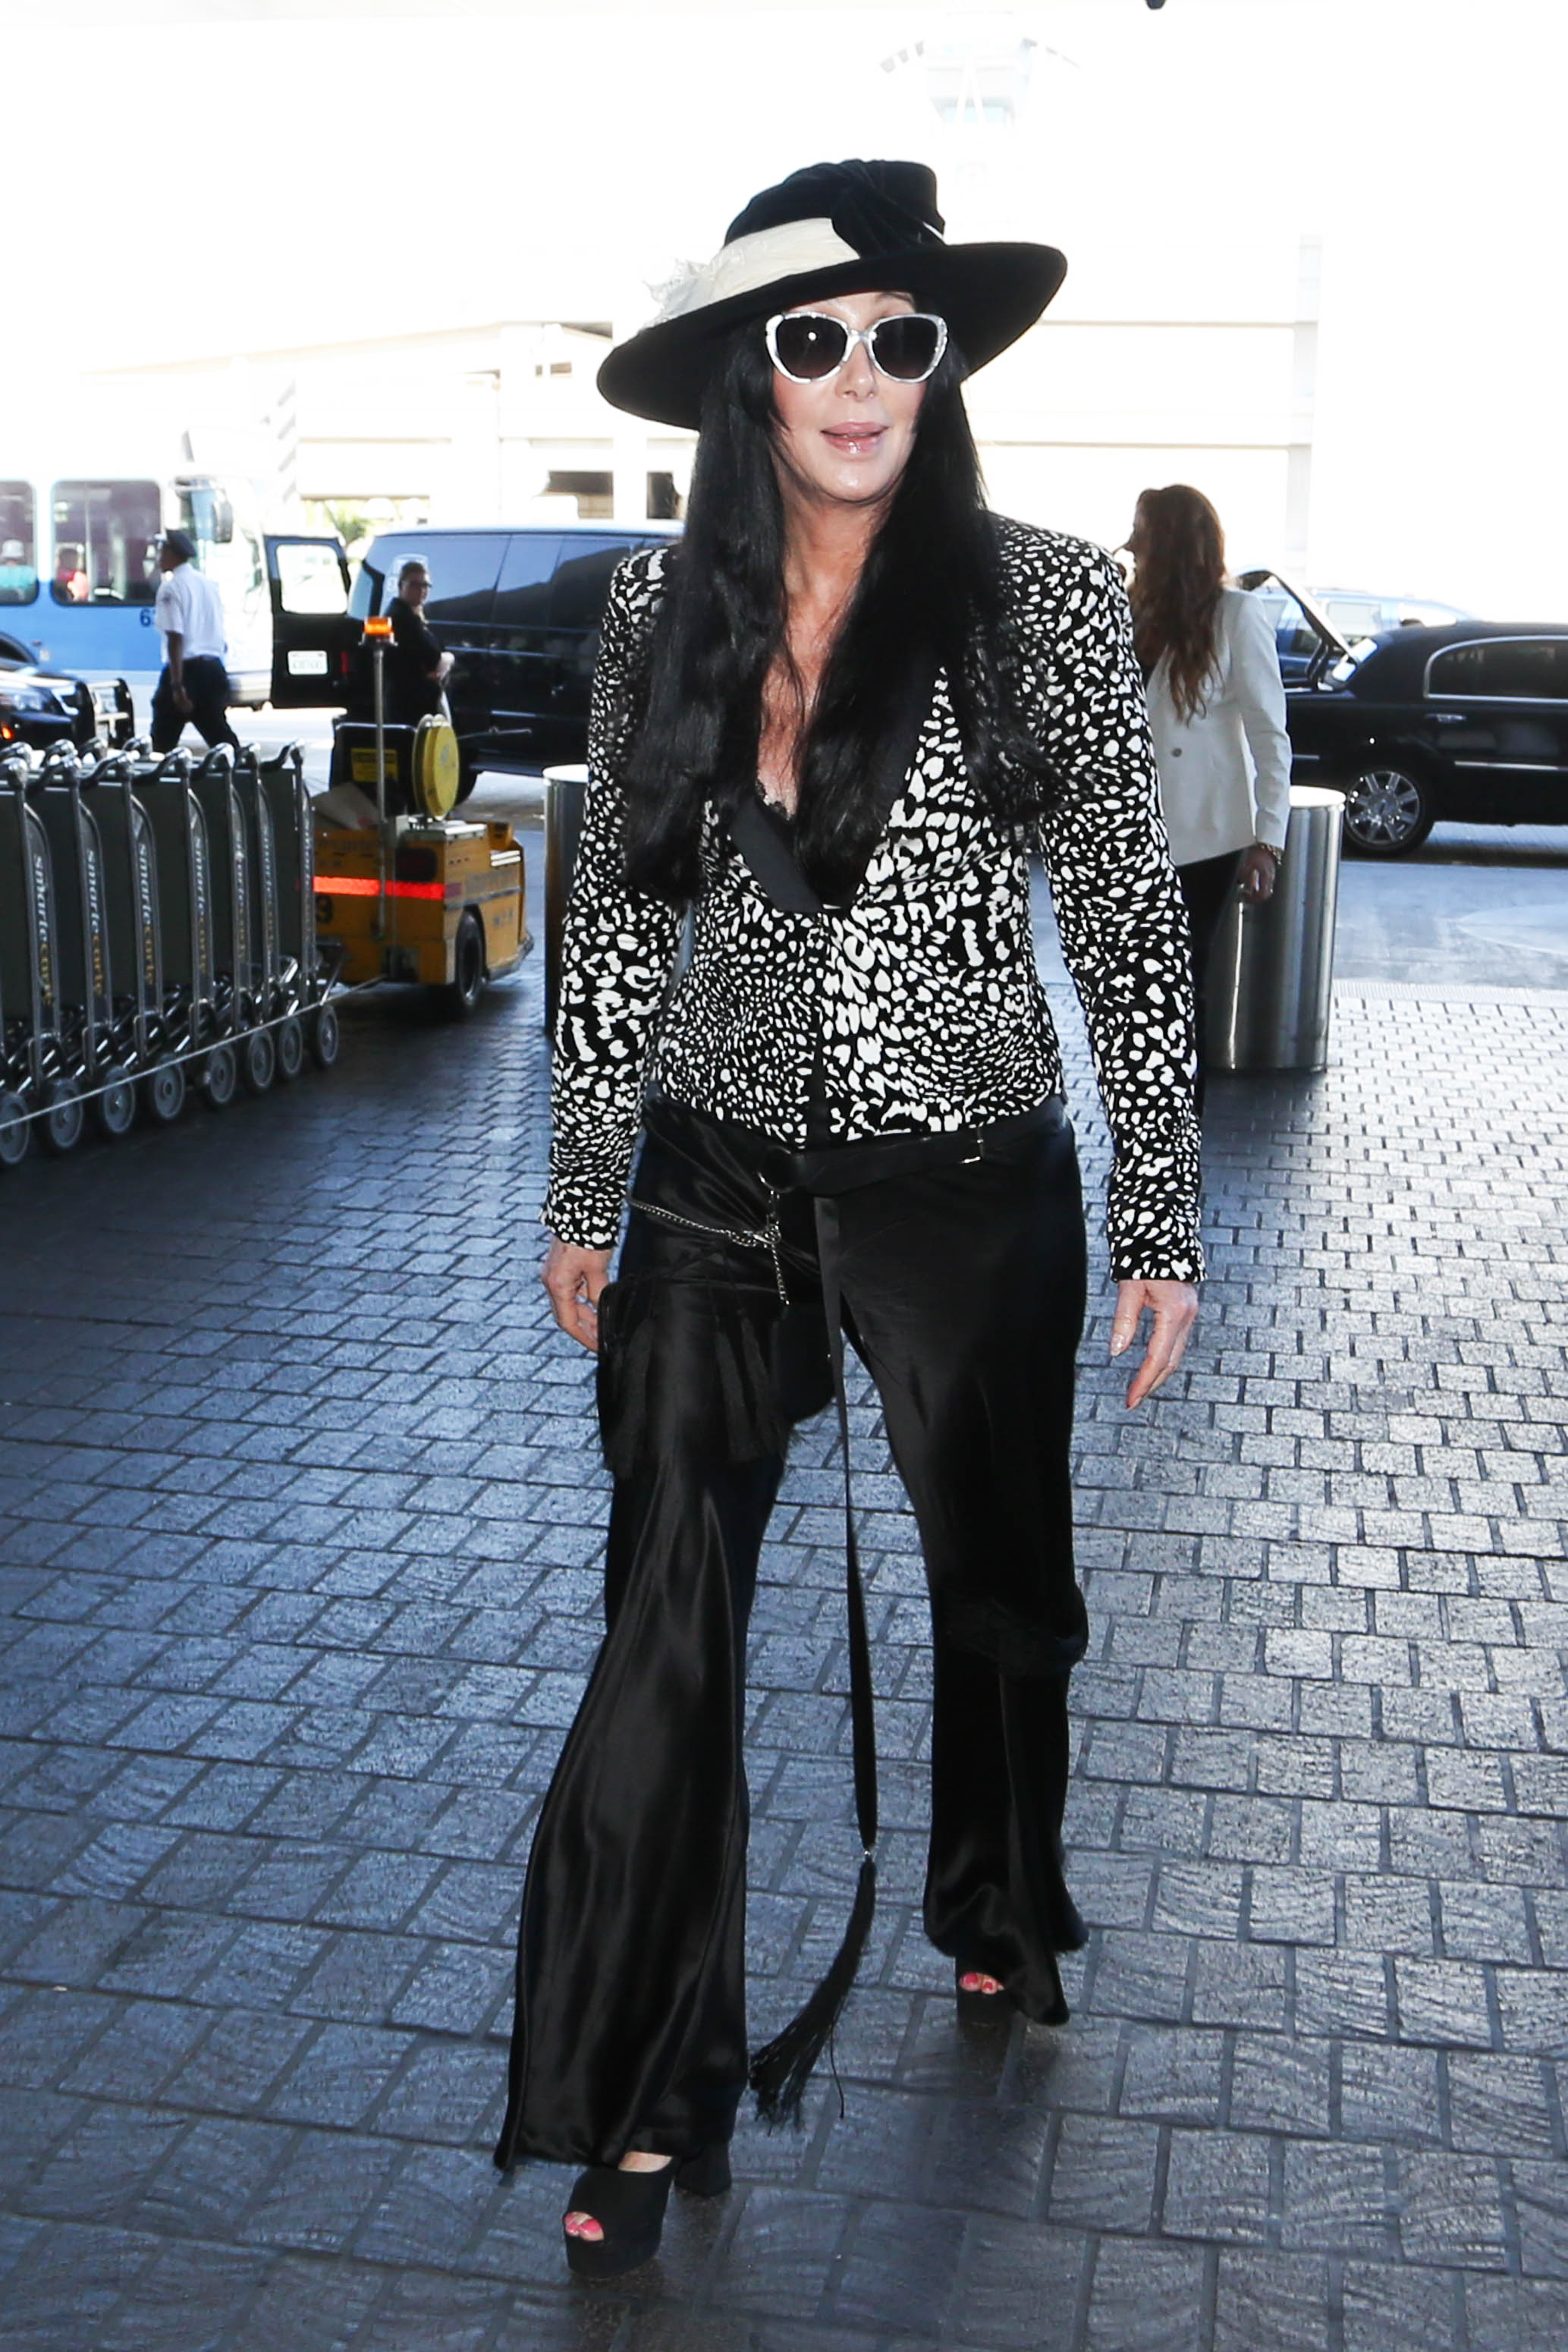 Cher in Los Angeles on Aug. 23, 2015.